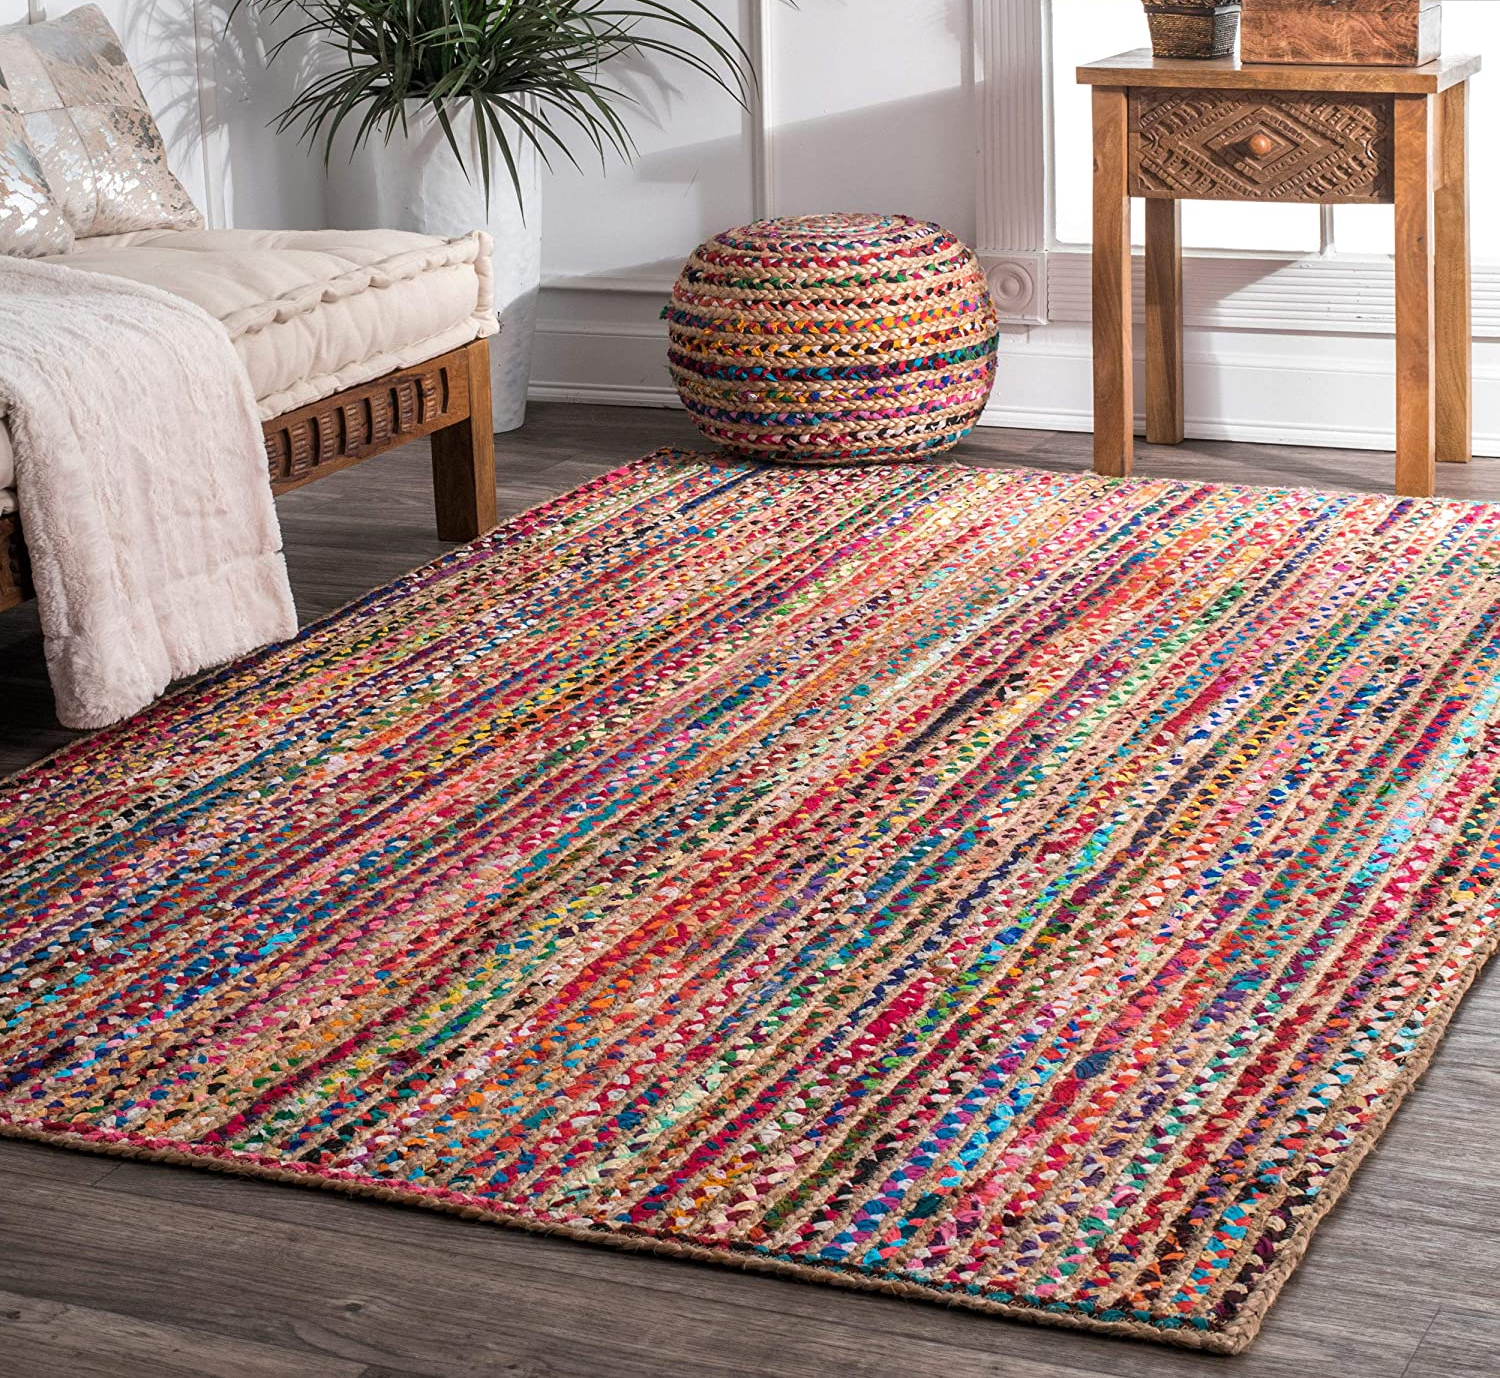 the area rug sitting on the floor